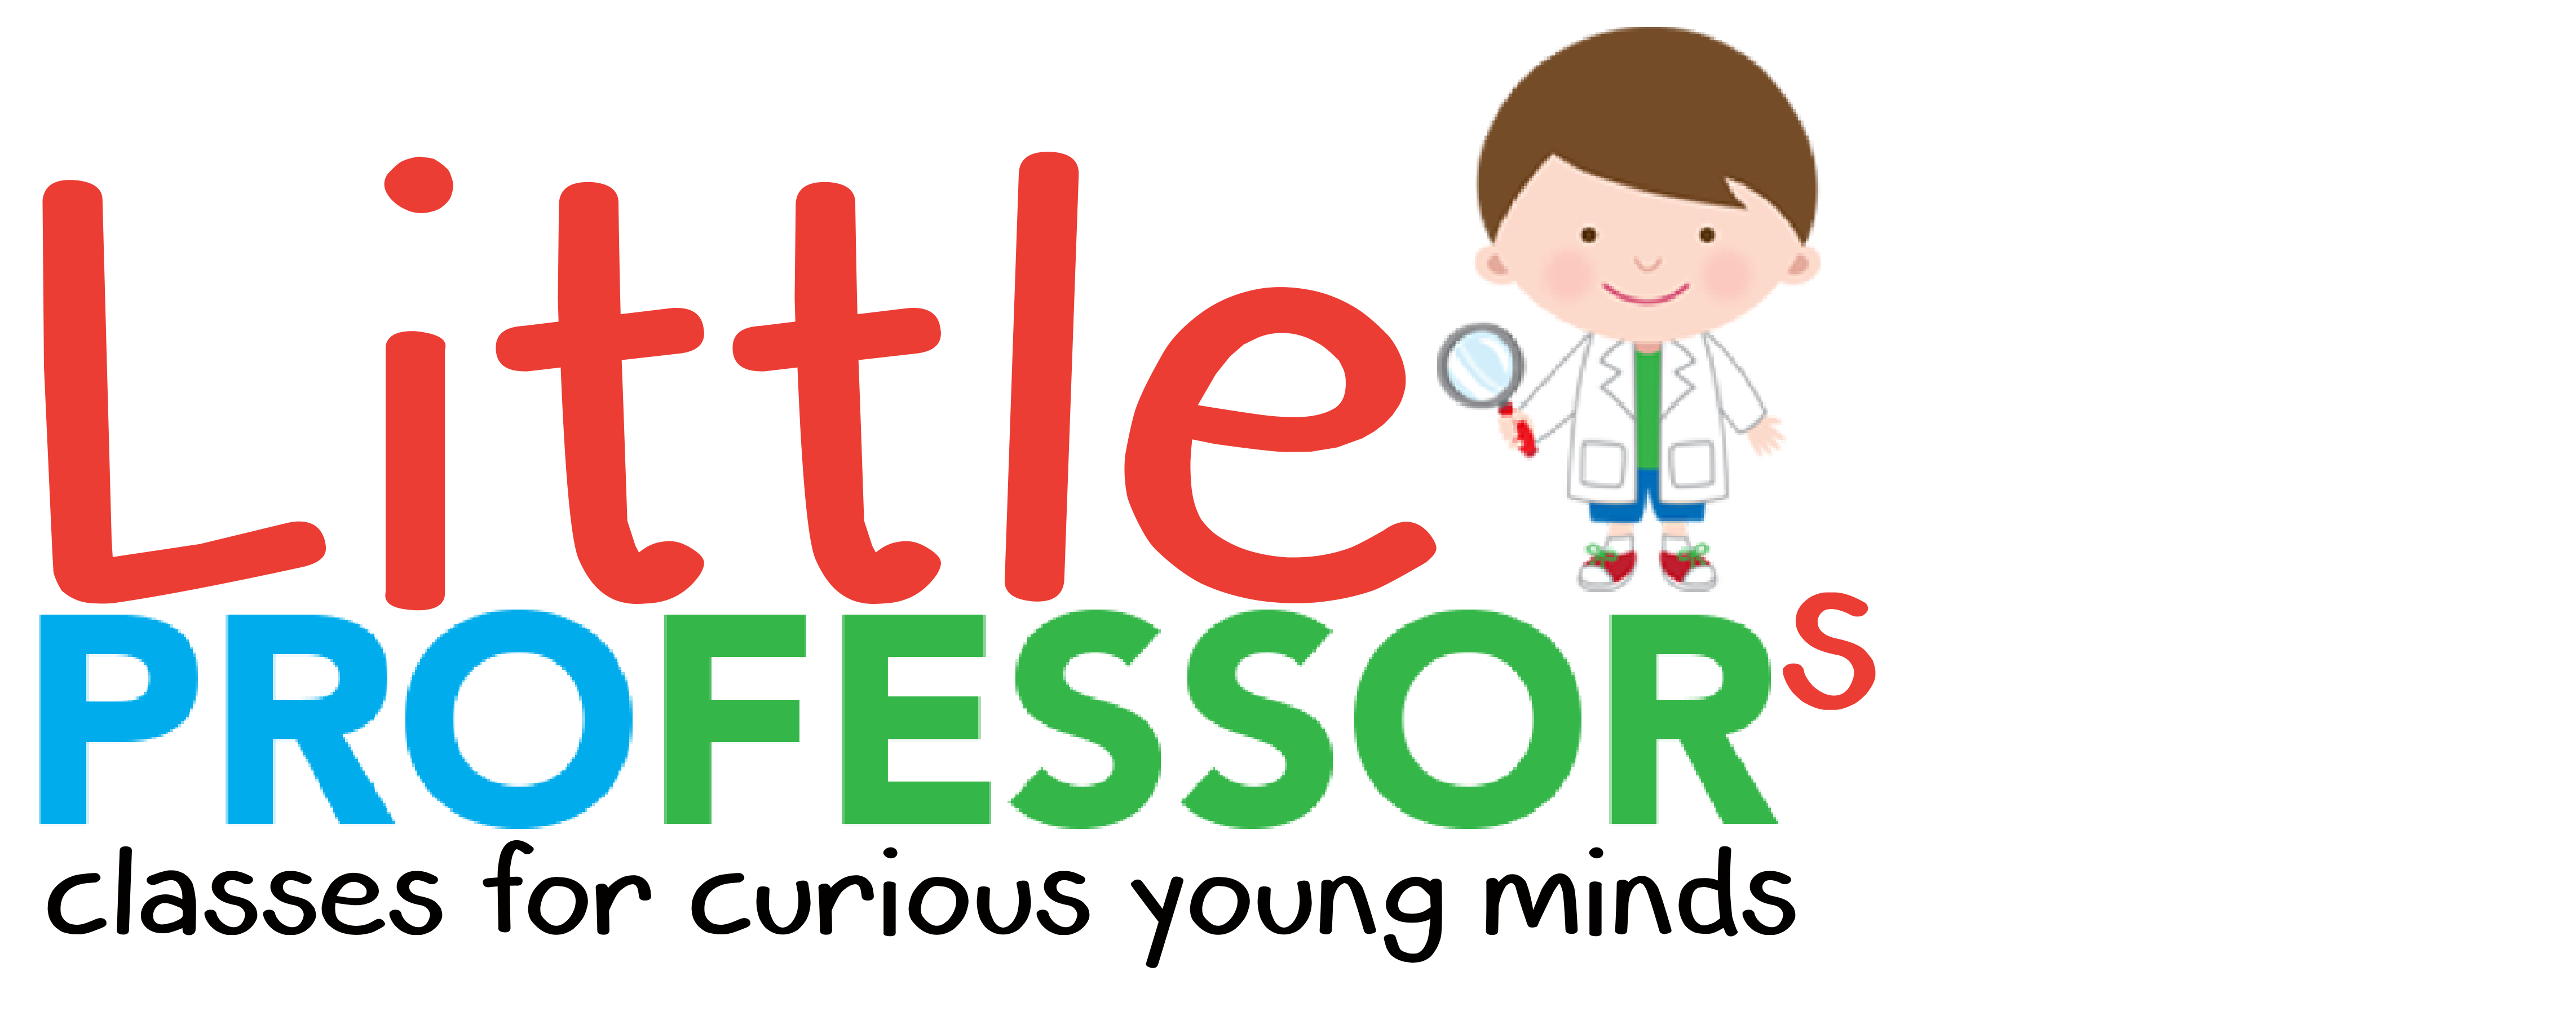 vector freeuse library Little professors steam classes. Professor teaching clipart